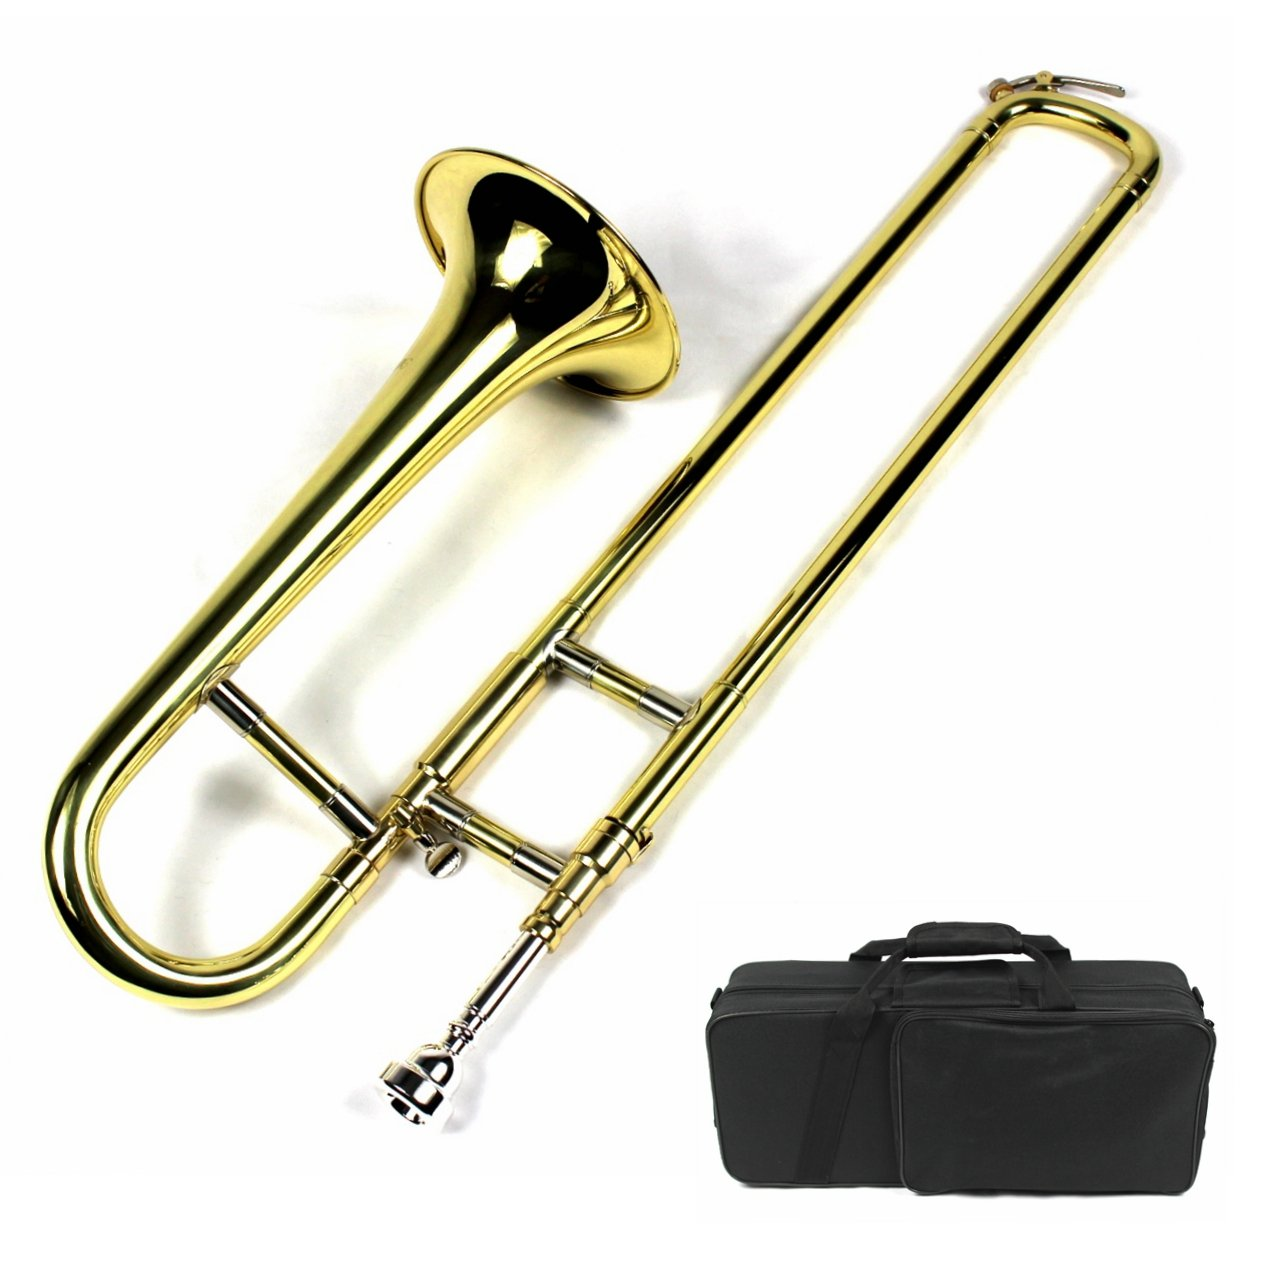 Brand New Bb Mini Trombone w/ Case and Mouthpiece- Gold Lacquer Finish by Moz